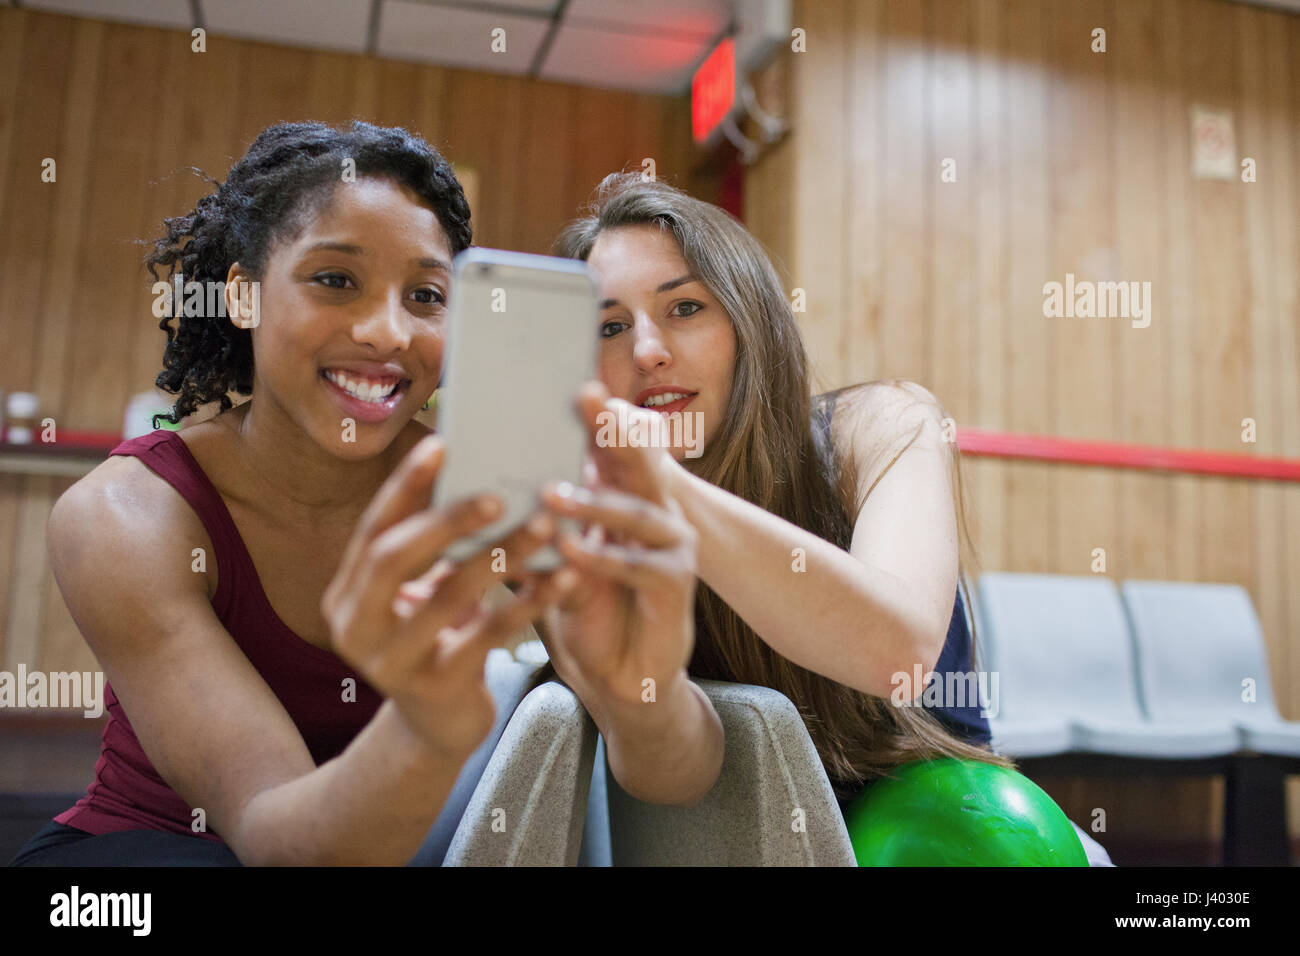 Two young woman taking a picture on a cell phone. - Stock Image